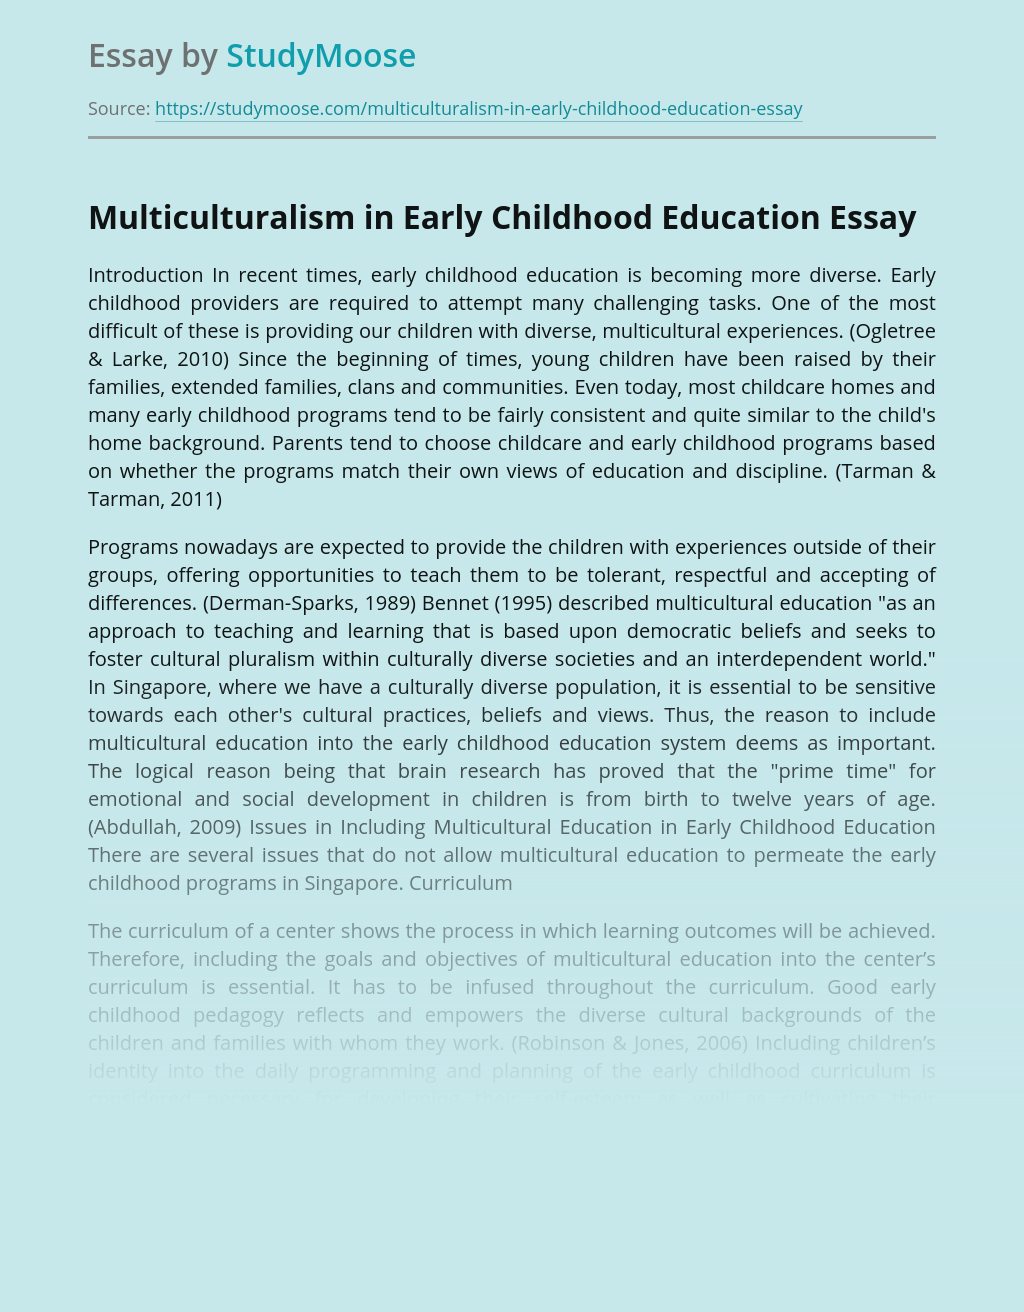 Multiculturalism in Early Childhood Education